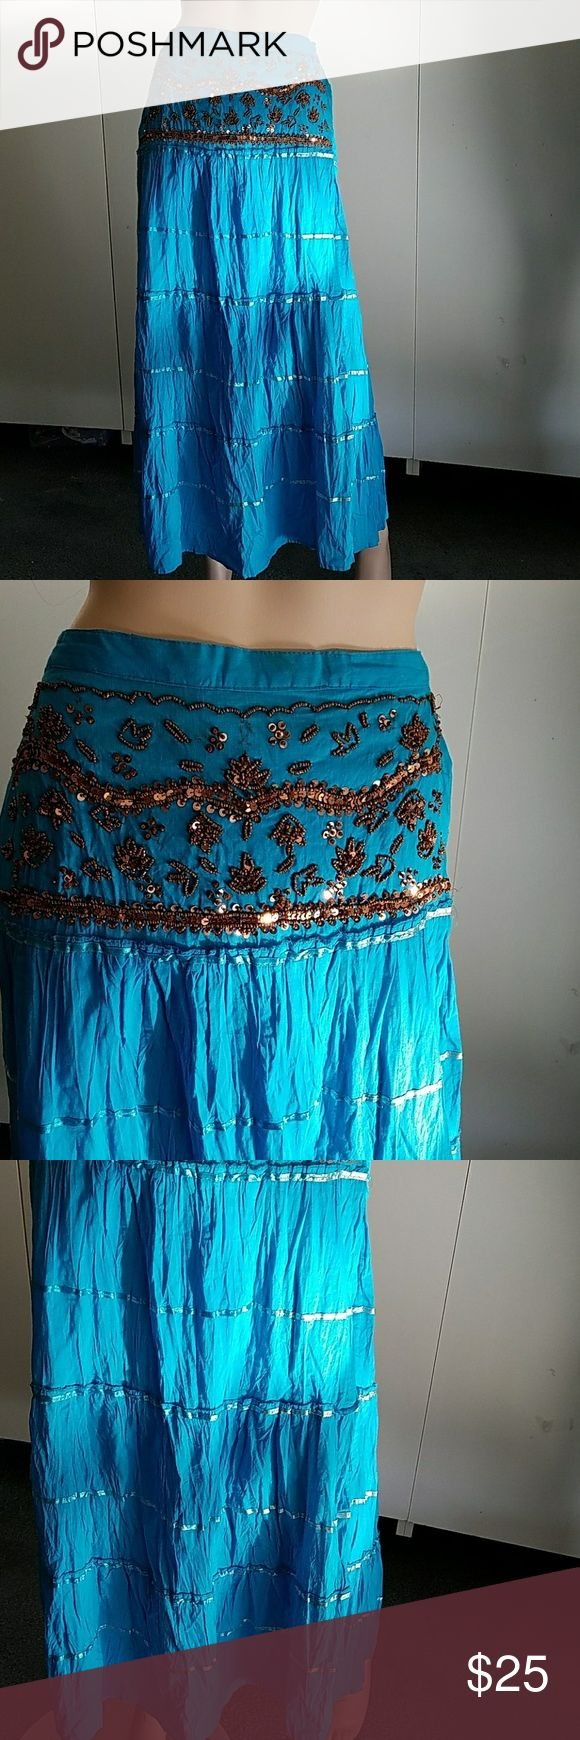 Skirt S/M Blue cotton tiered skirt braids in between tier  . Copper colored sequins and beads in front . Elastic waistband in back Made in India Skirts Midi